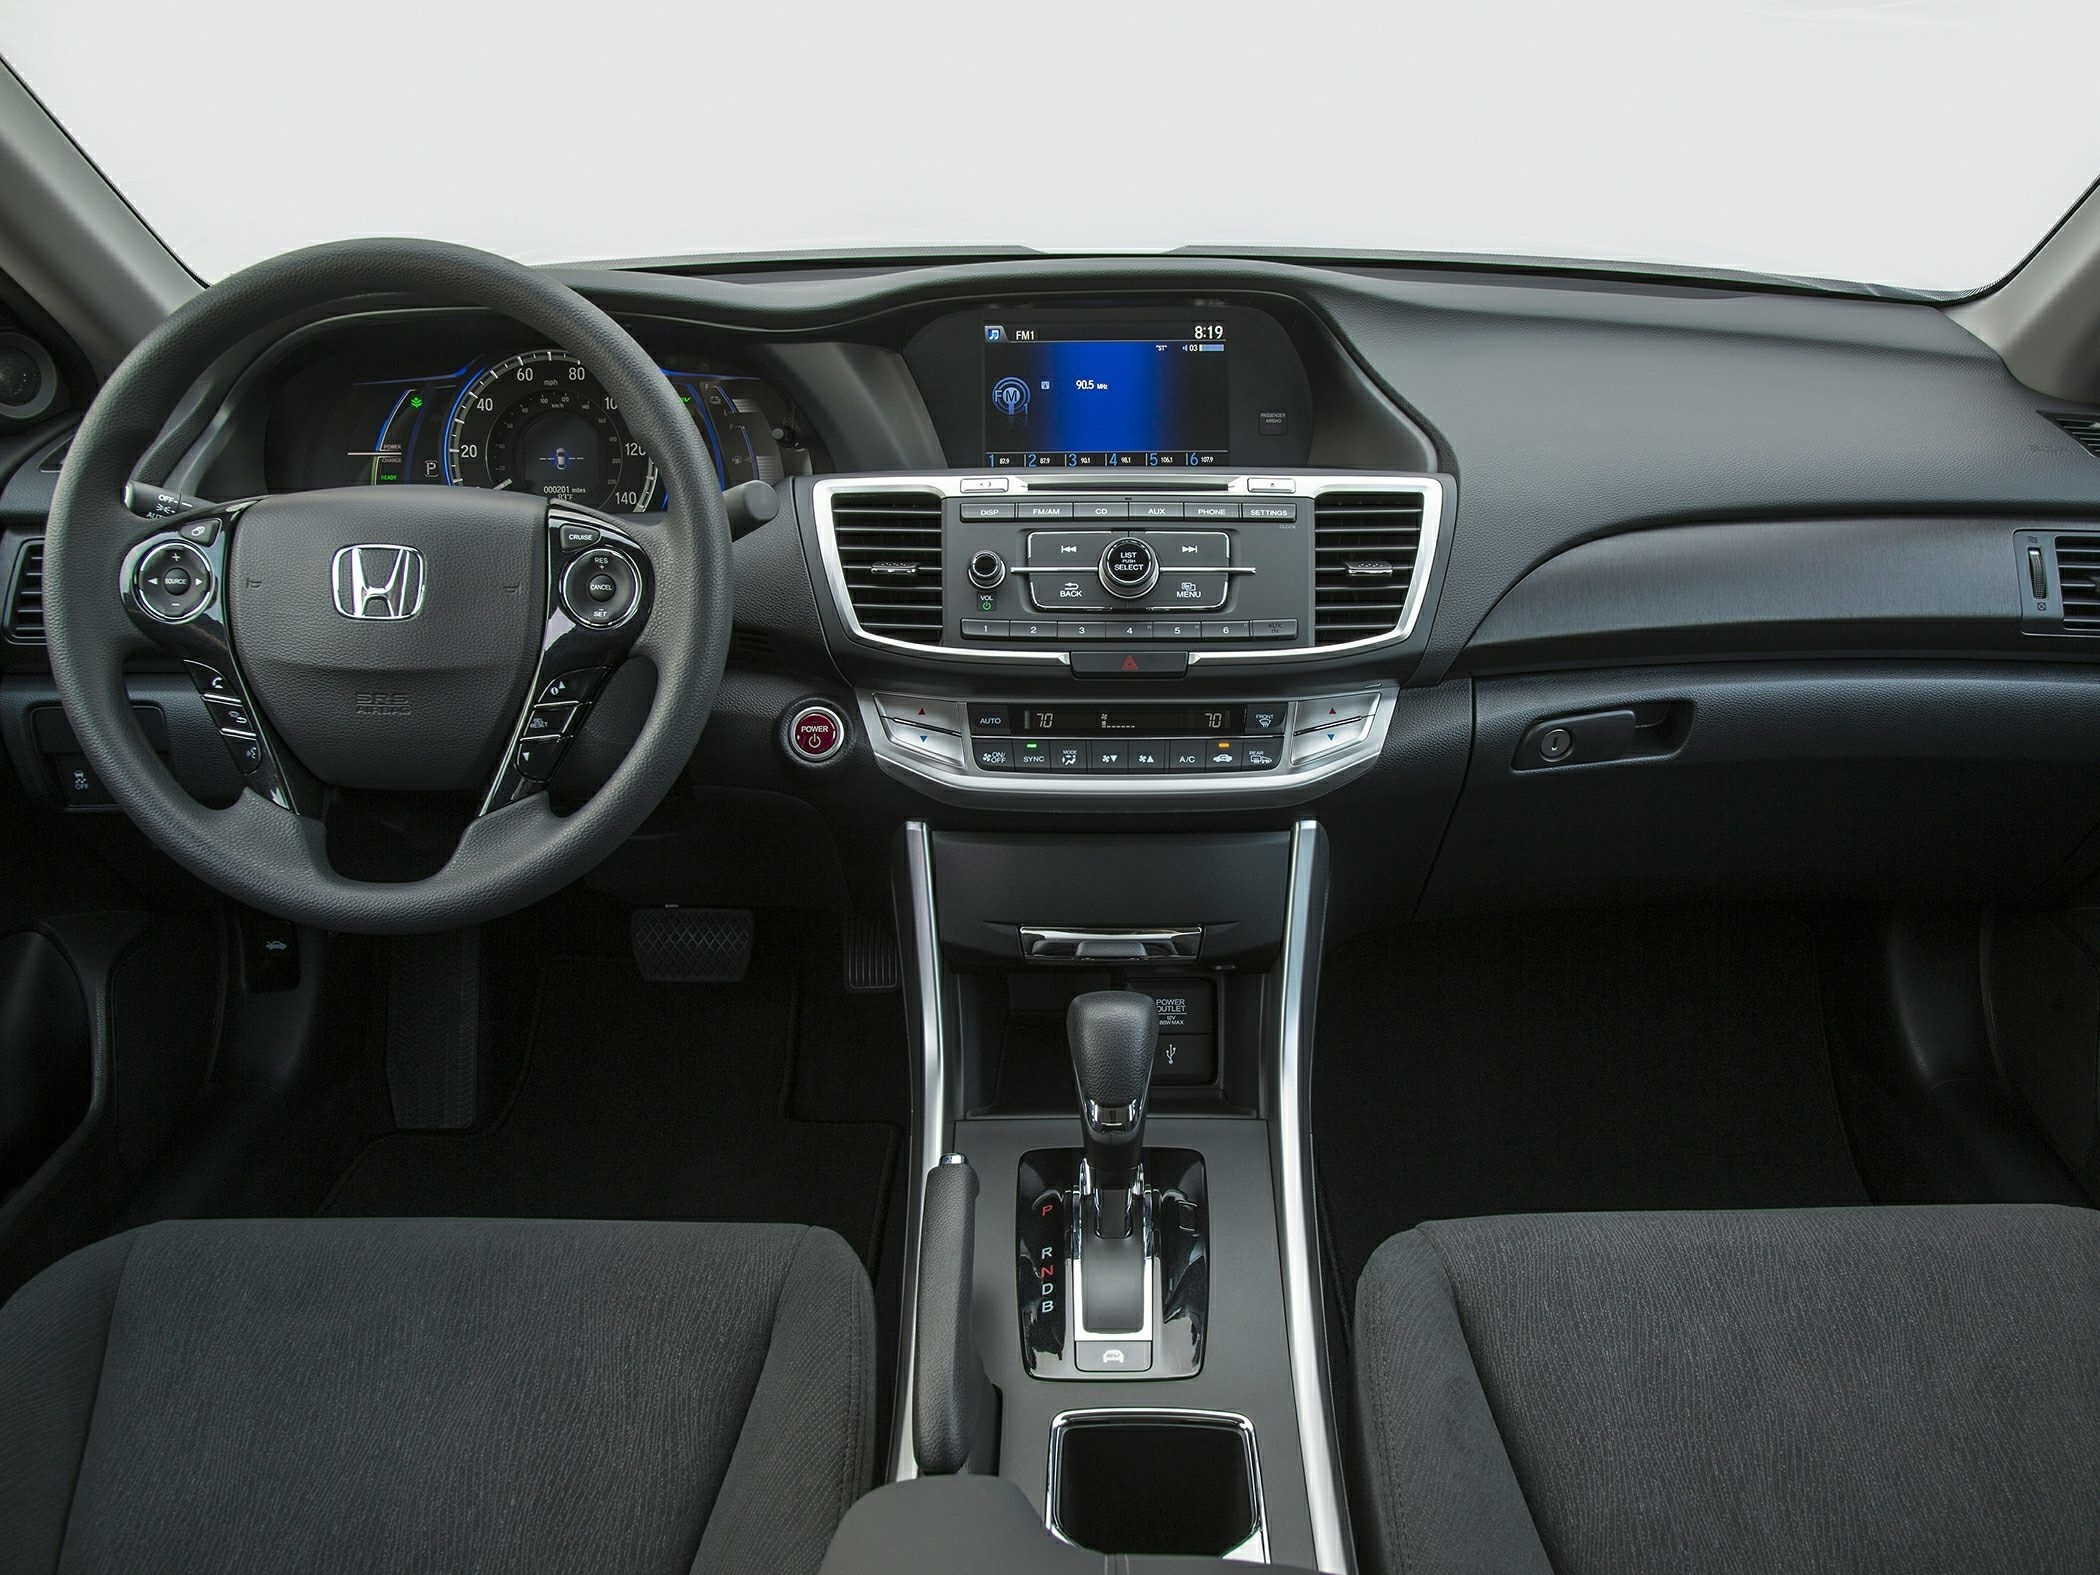 2014 honda accord invoice price invoice template ideas 2015 honda accord invoice